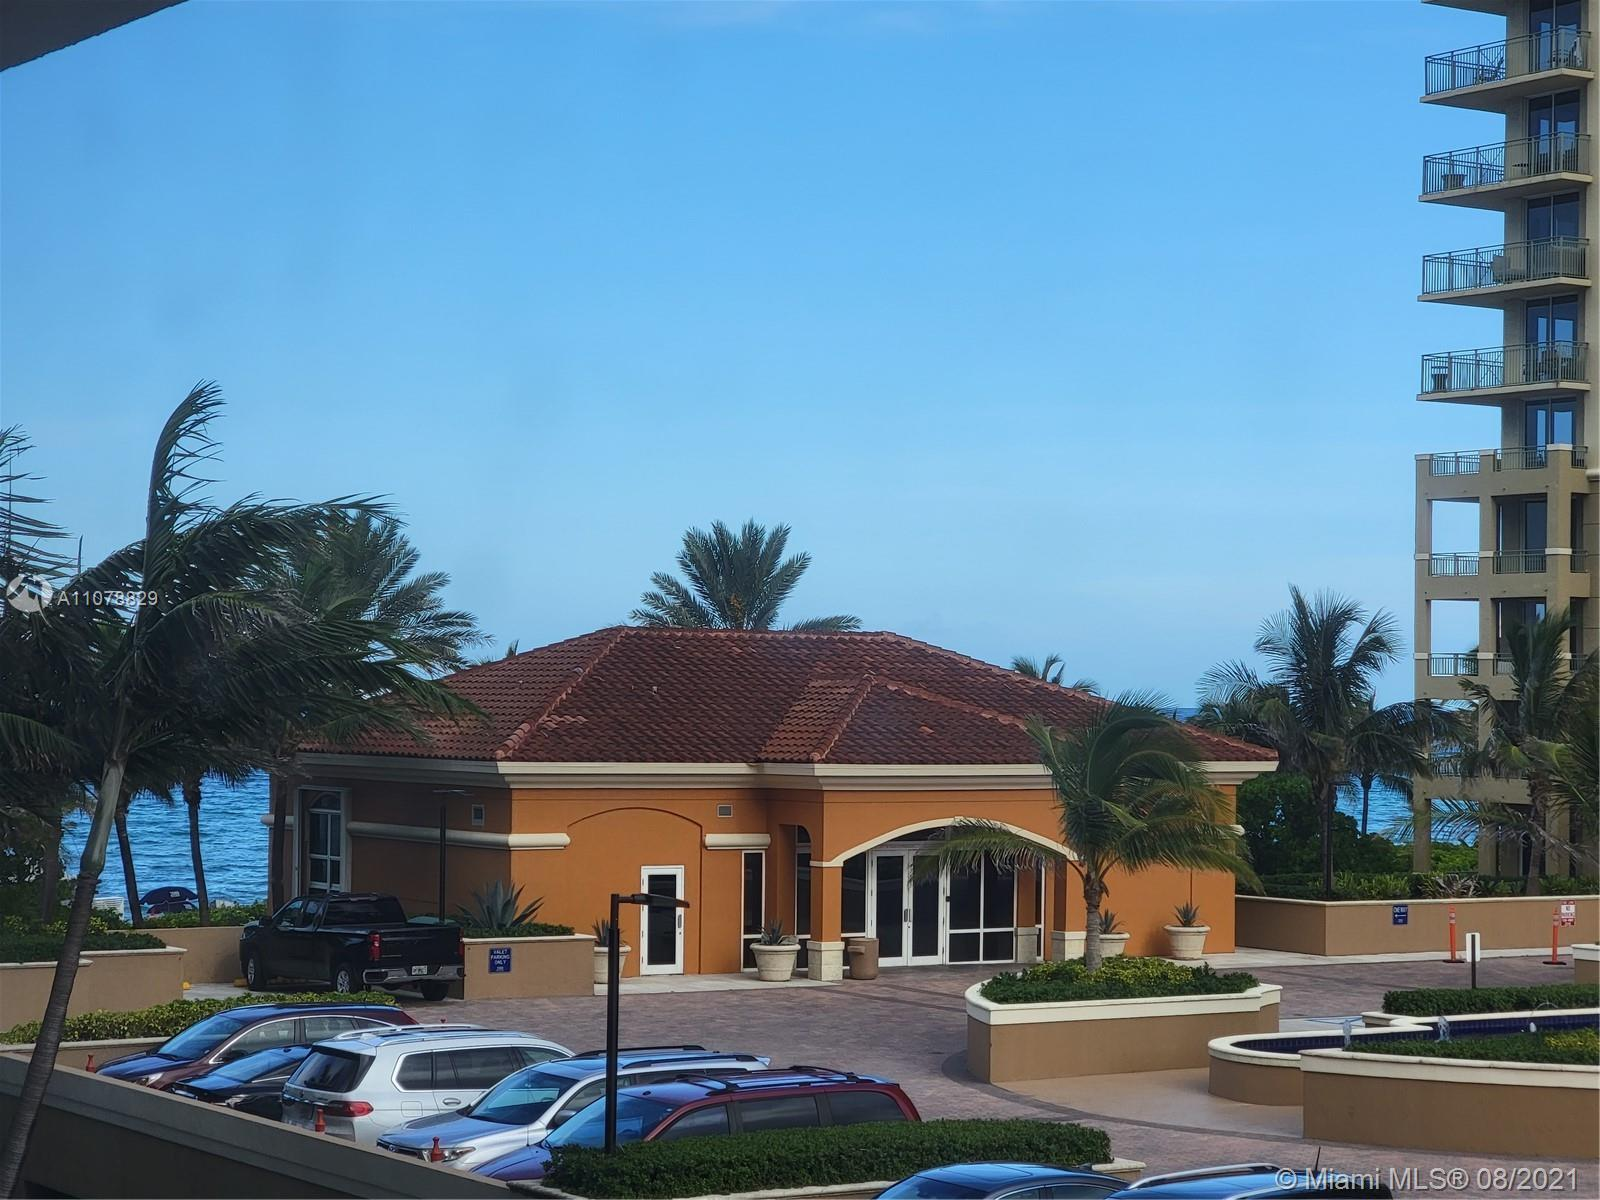 INCREDIBLE PRICE GREAT OPPORTUNITY!!!  UPDATED, OCEANFRONT CONDO, ASSESSMENT ALREADY PAID IN FULL!